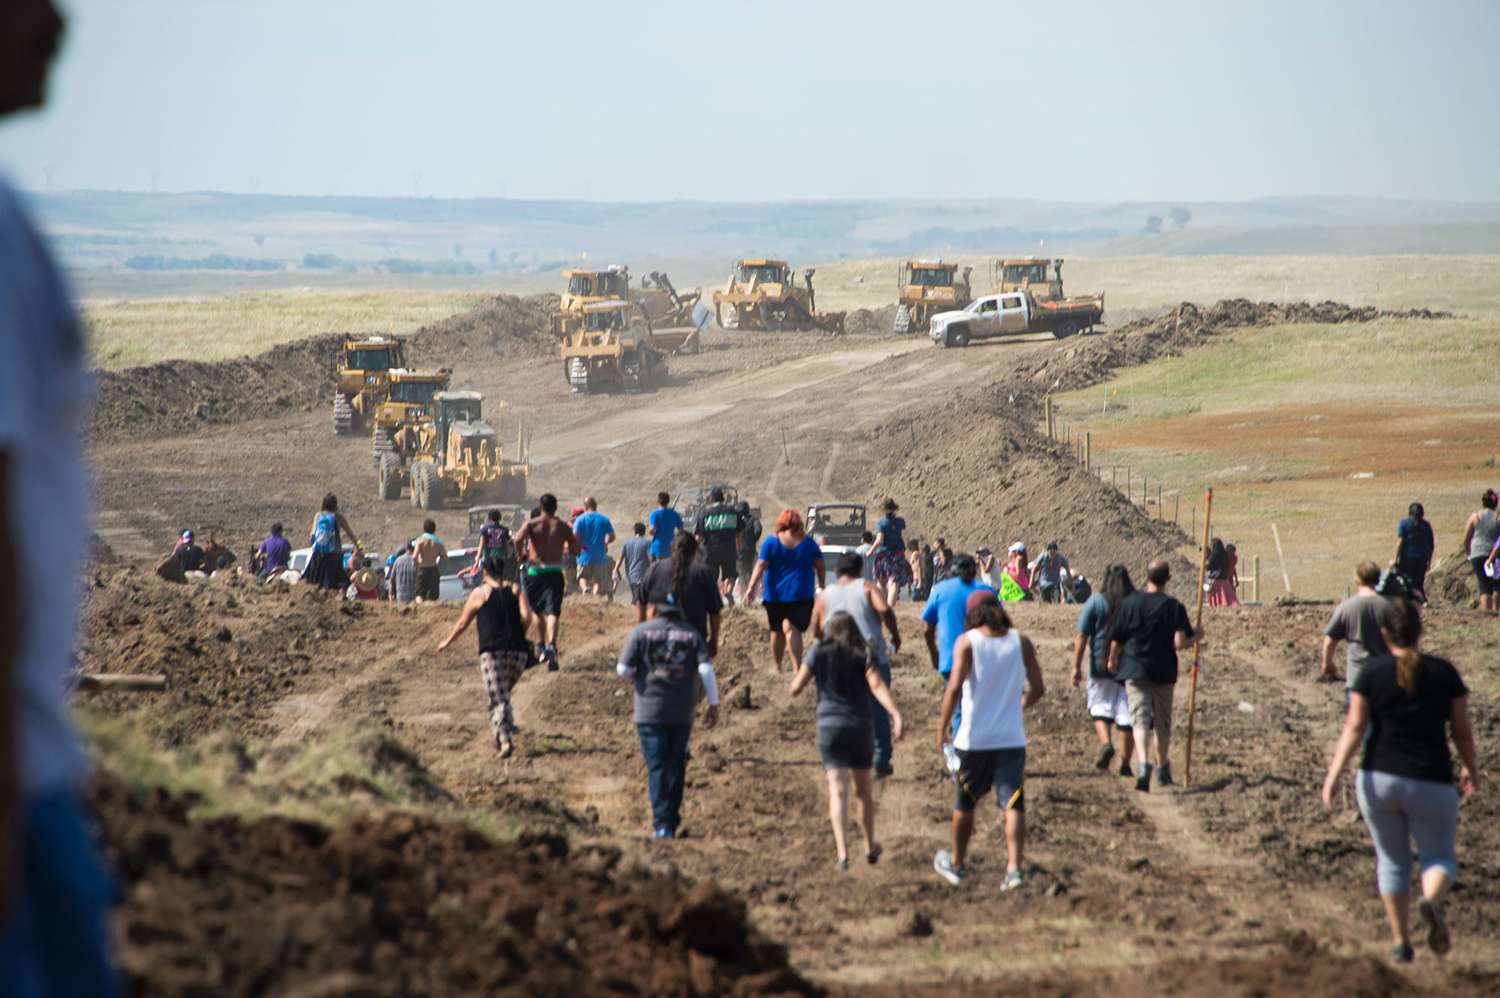 Native American protestors and their supporters are confronted by security during a demonstration against work being done for the Dakota Access Pipeline (DAPL) oil pipeline, near Cannon Ball, North Dakota, September 3, 2016. Hundreds of Native American protestors and their supporters, who fear the Dakota Access Pipeline will polluted their water, forced construction workers and security forces to retreat and work to stop. / AFP / Robyn BECK        (Photo credit should read ROBYN BECK/AFP/Getty Images)